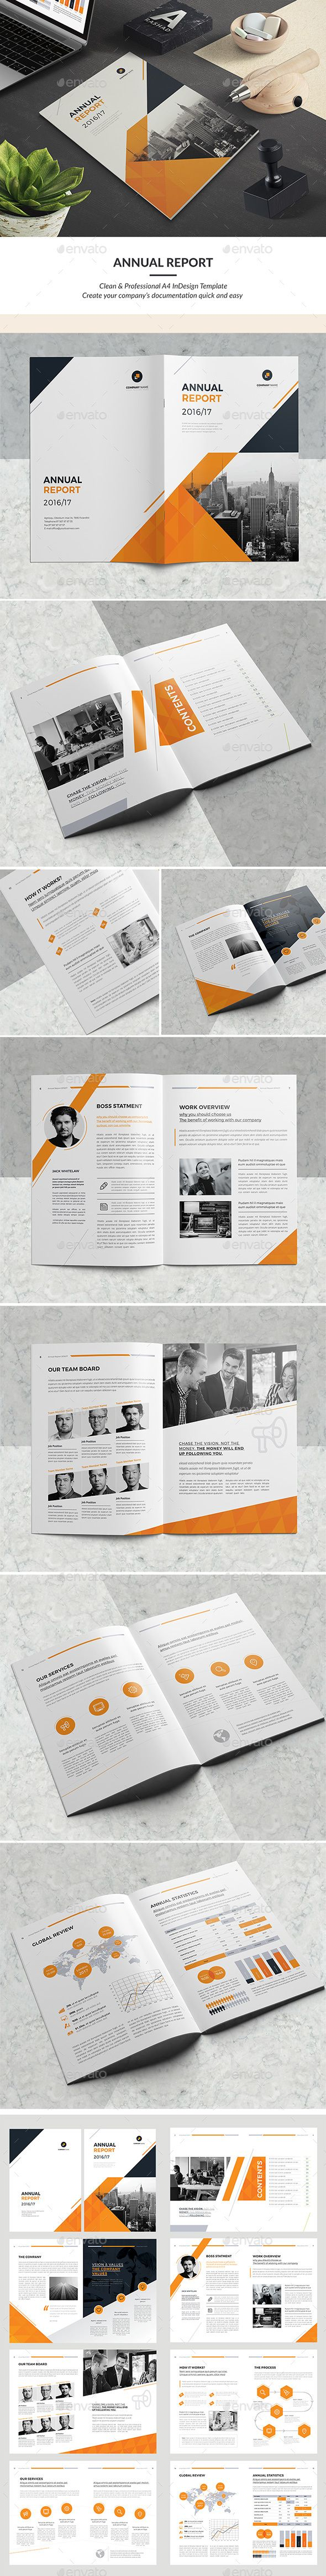 Get Your Attractive And Professional Realestate Brochure Design - Professional brochure design templates